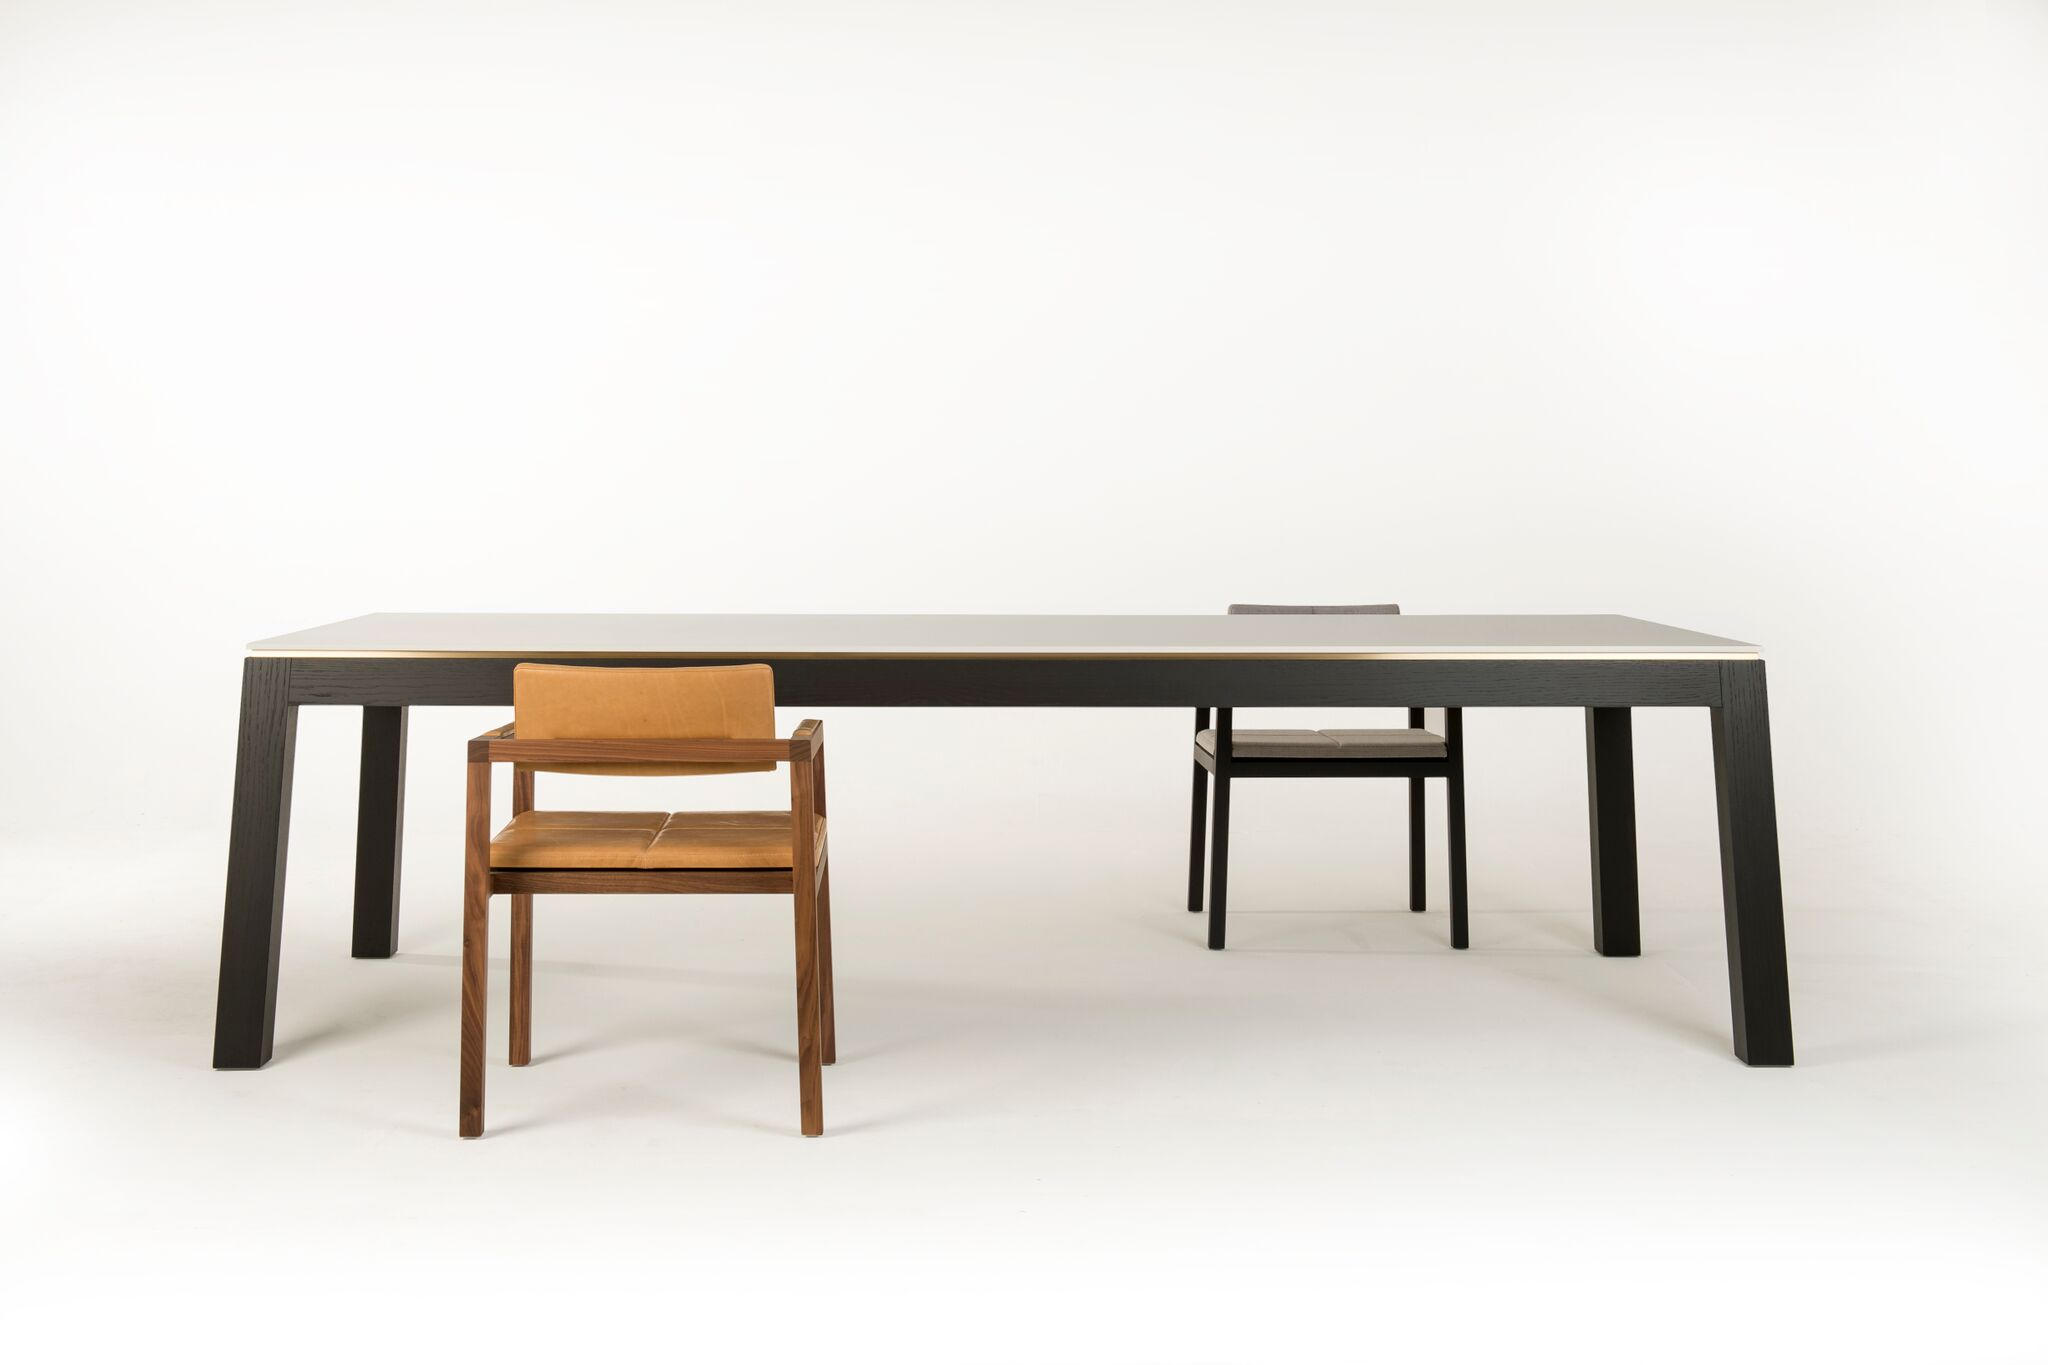 Gallery Of The Mila Table By Fraco Crea Local Australian Furniture Design Melbourne, Vic Image 3